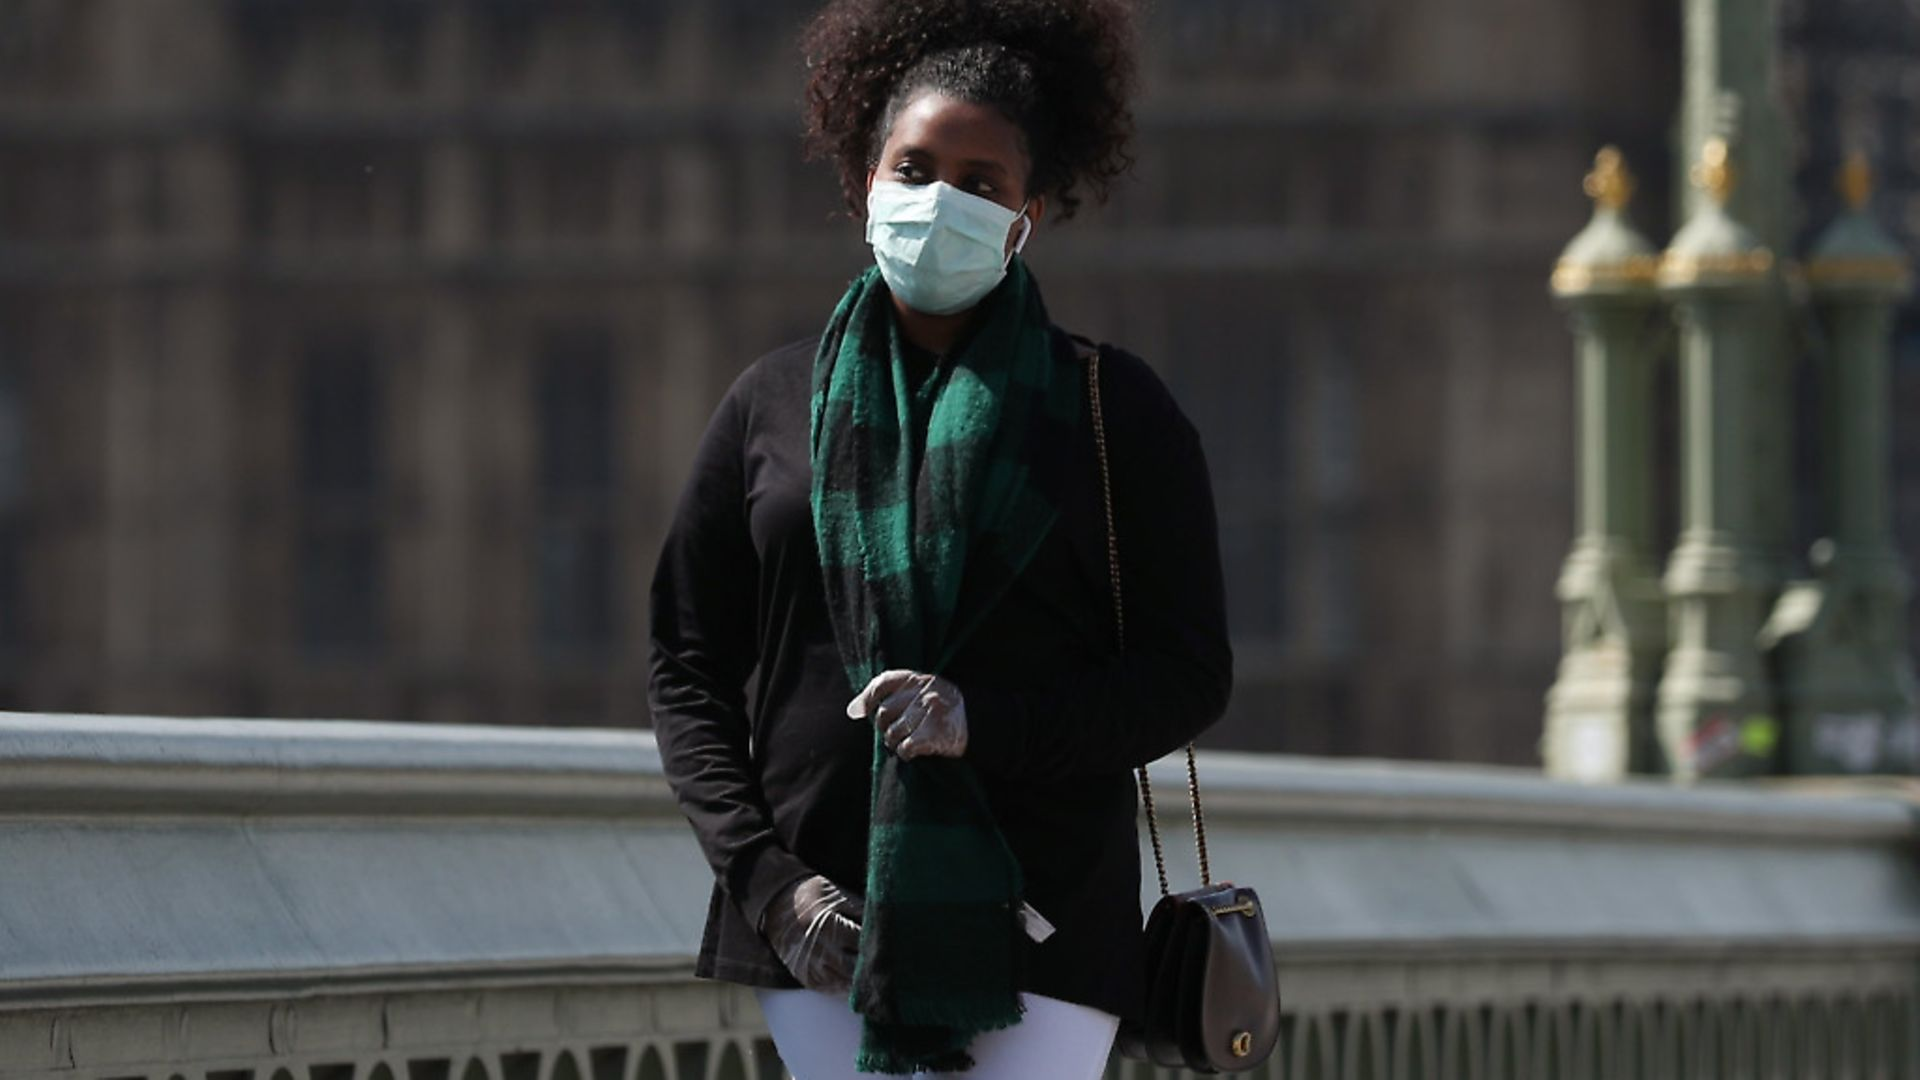 A passer-by wears a face mask on Westminster Bridge in London as the UK continues in lockdown to help curb the spread of the coronavirus. Photograph: Yui Mok/PA. - Credit: PA